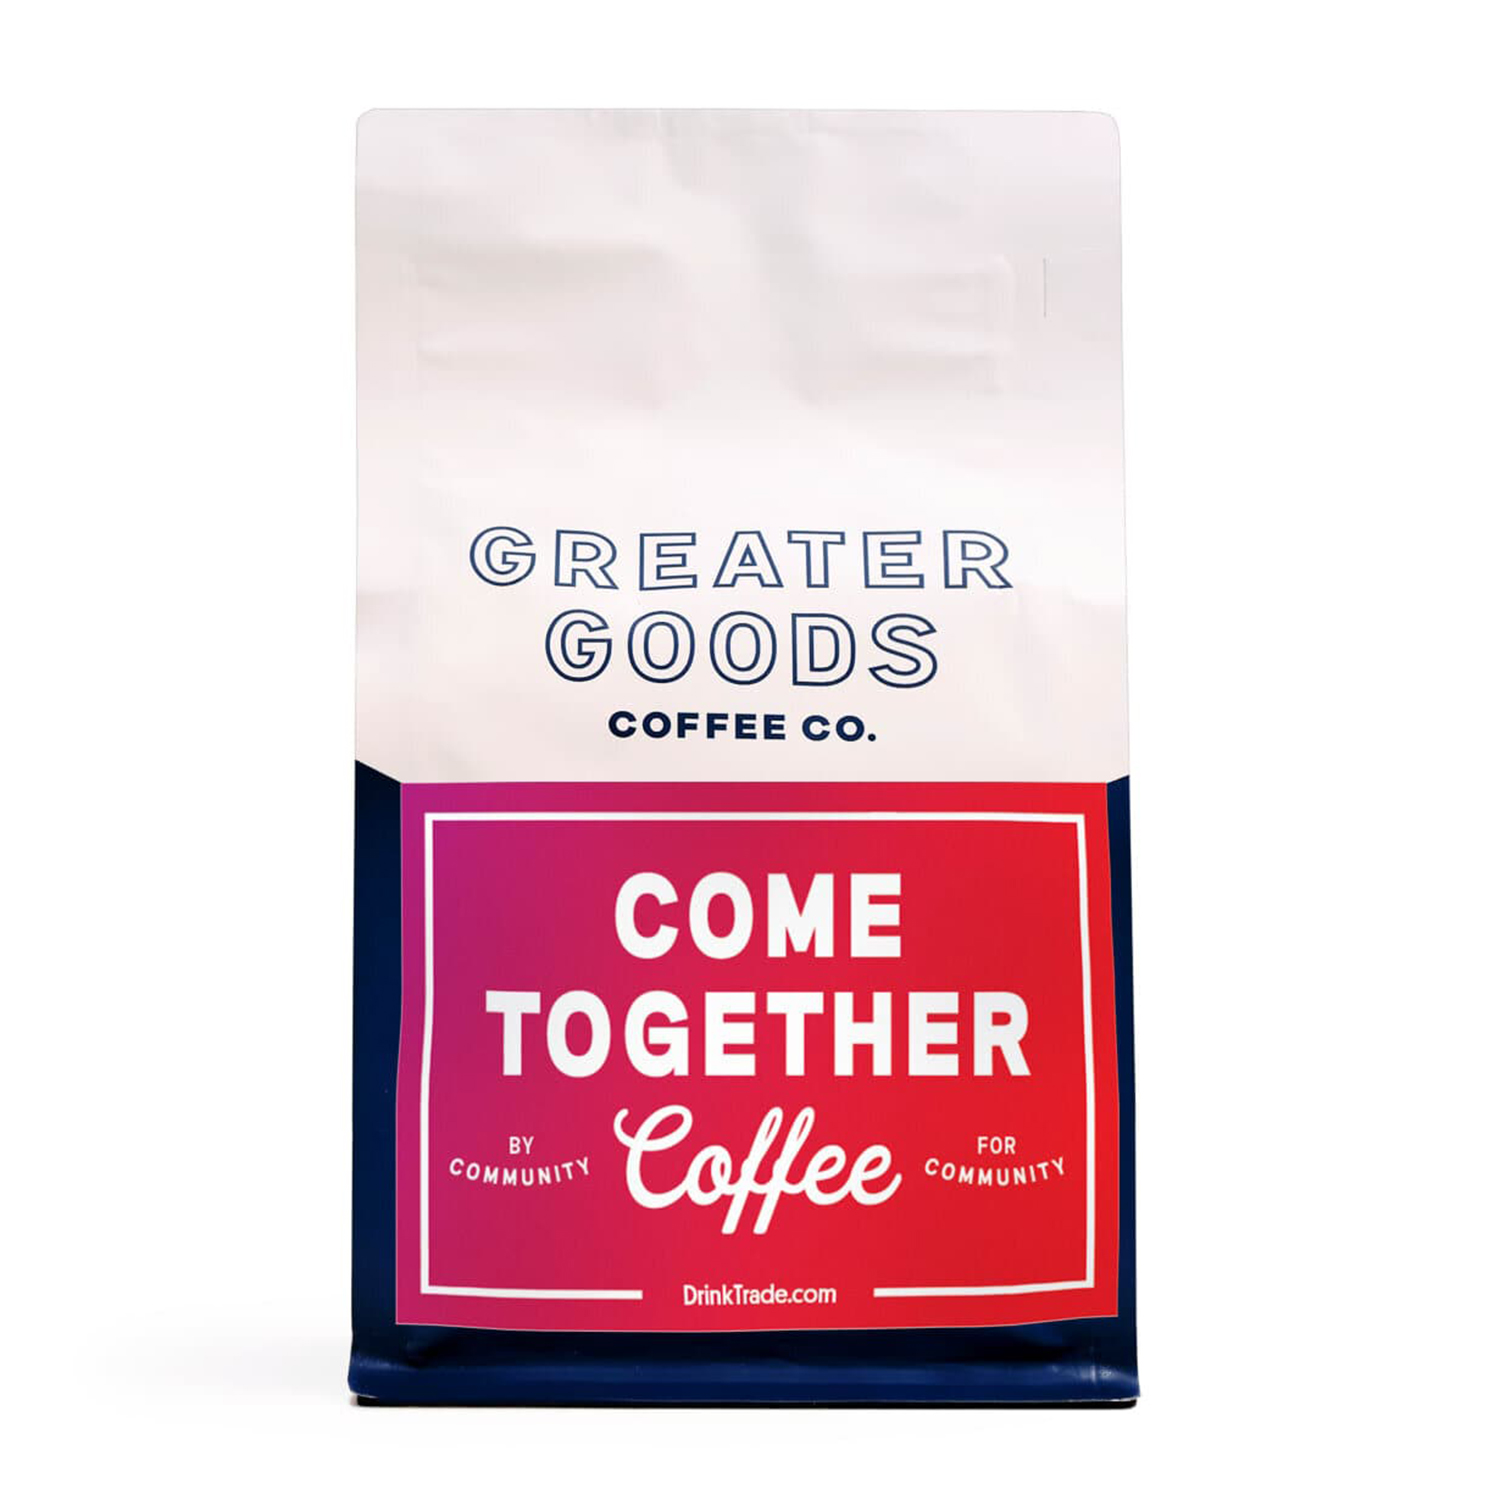 Drink Trade Coffee